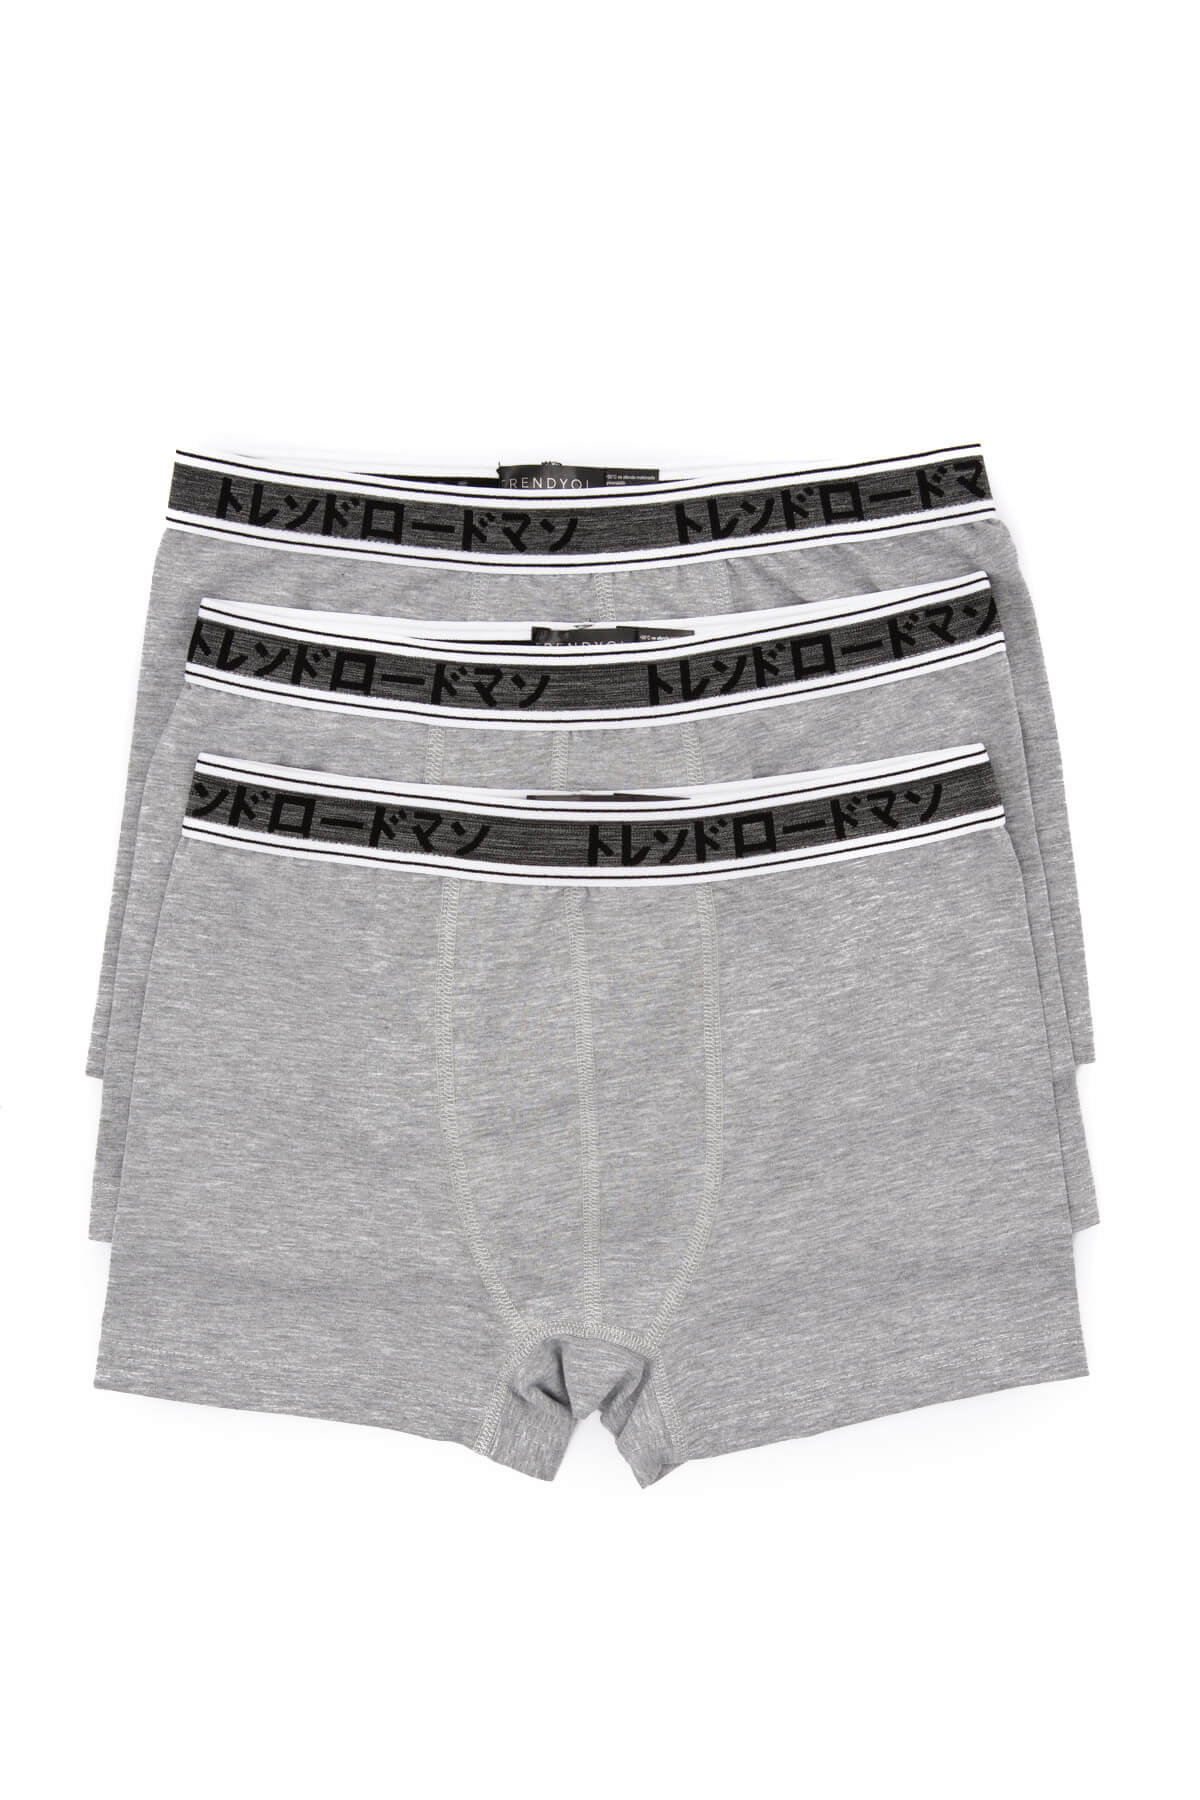 Trendyol Grey Male Boxer-solid color 3-Mixed Packs